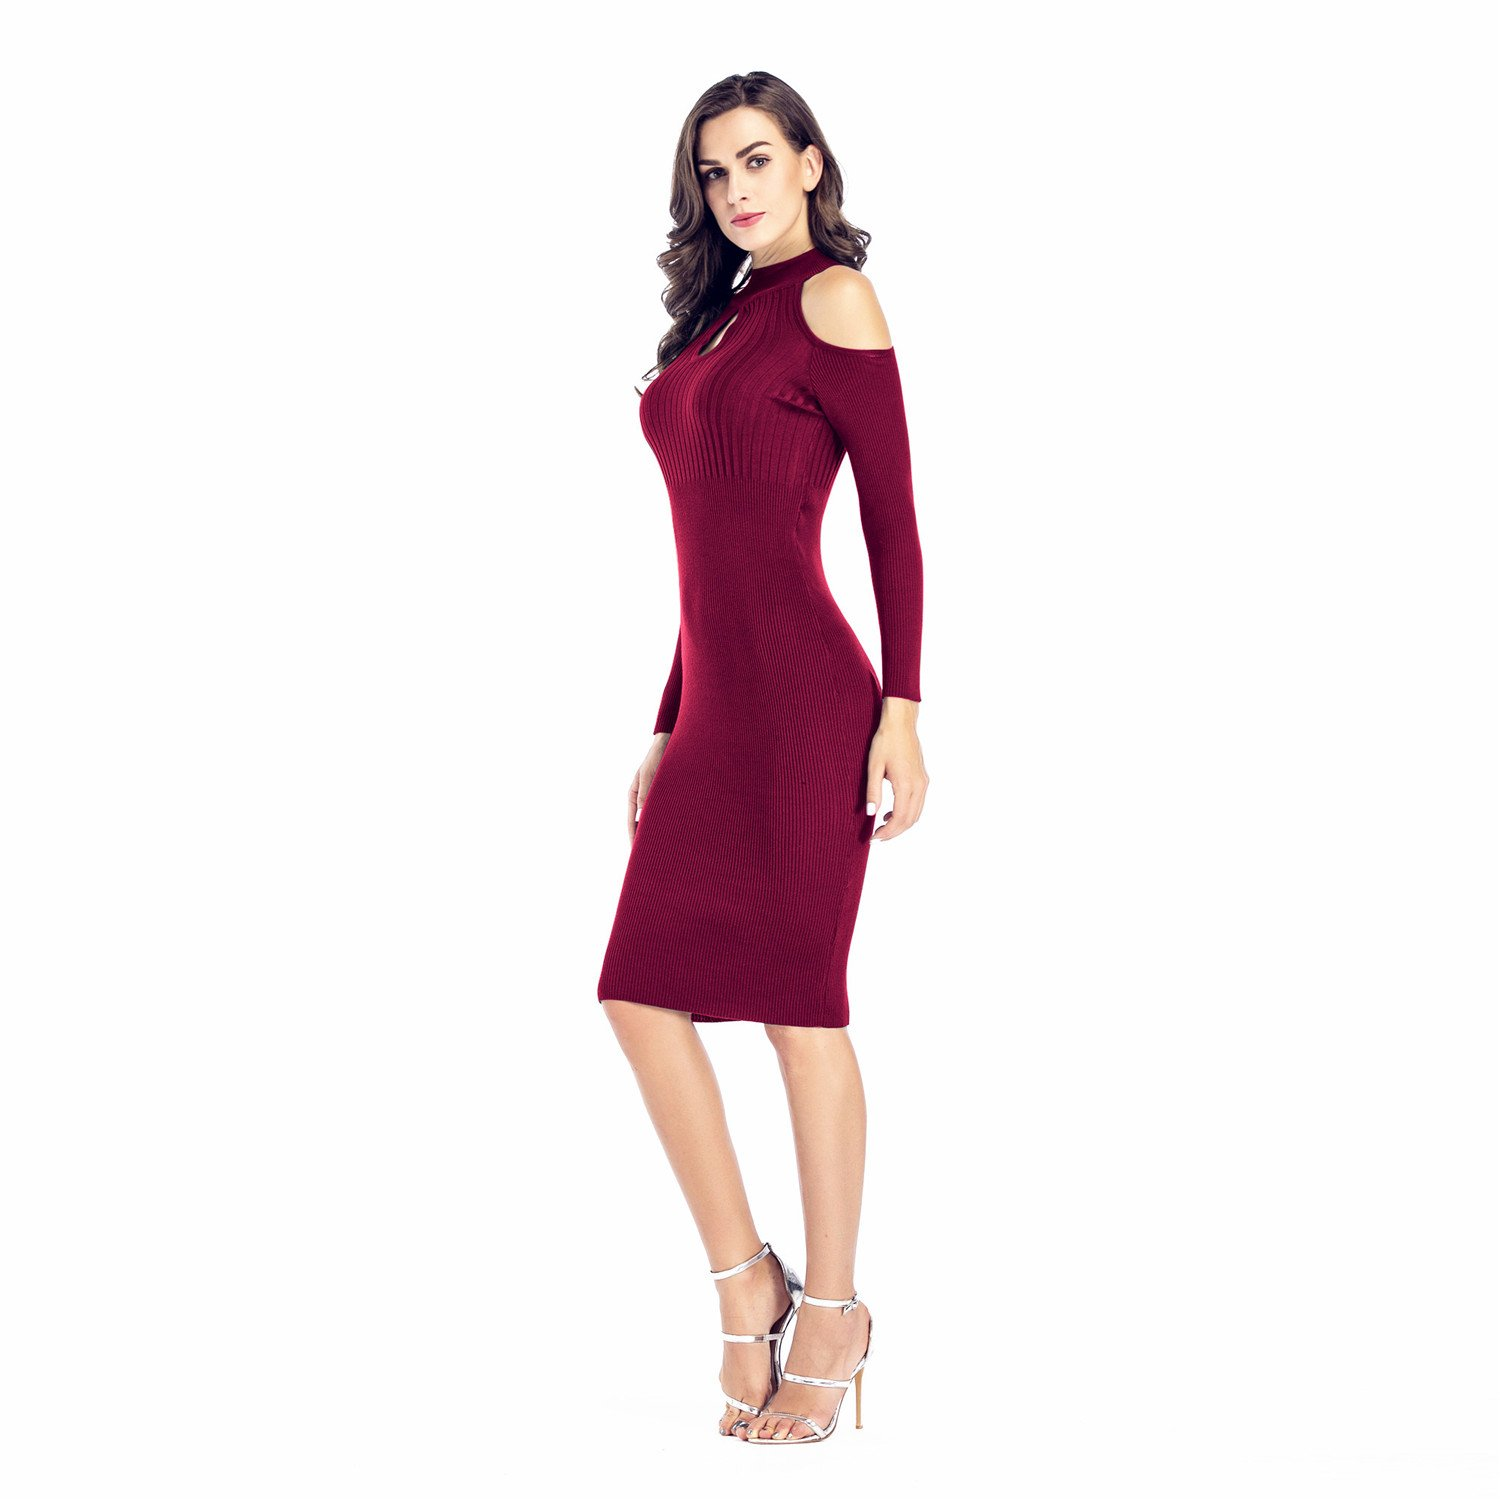 a849b572a88 Arctic Cubic Long Sleeve High Mock Neck Cold Open Shoulder Ribbed Rib Knit  Midi Bodycon Sweater Dress at Amazon Women s Clothing store